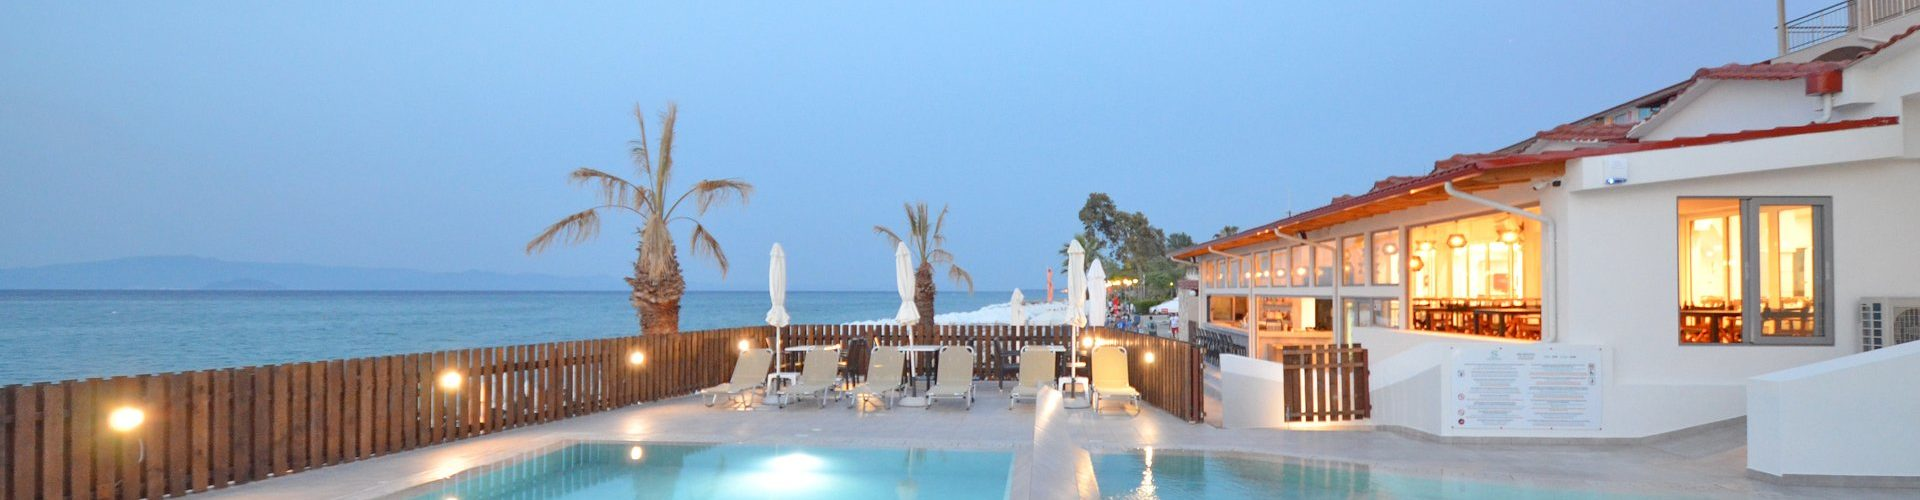 Sousouras Hotel Pool 20